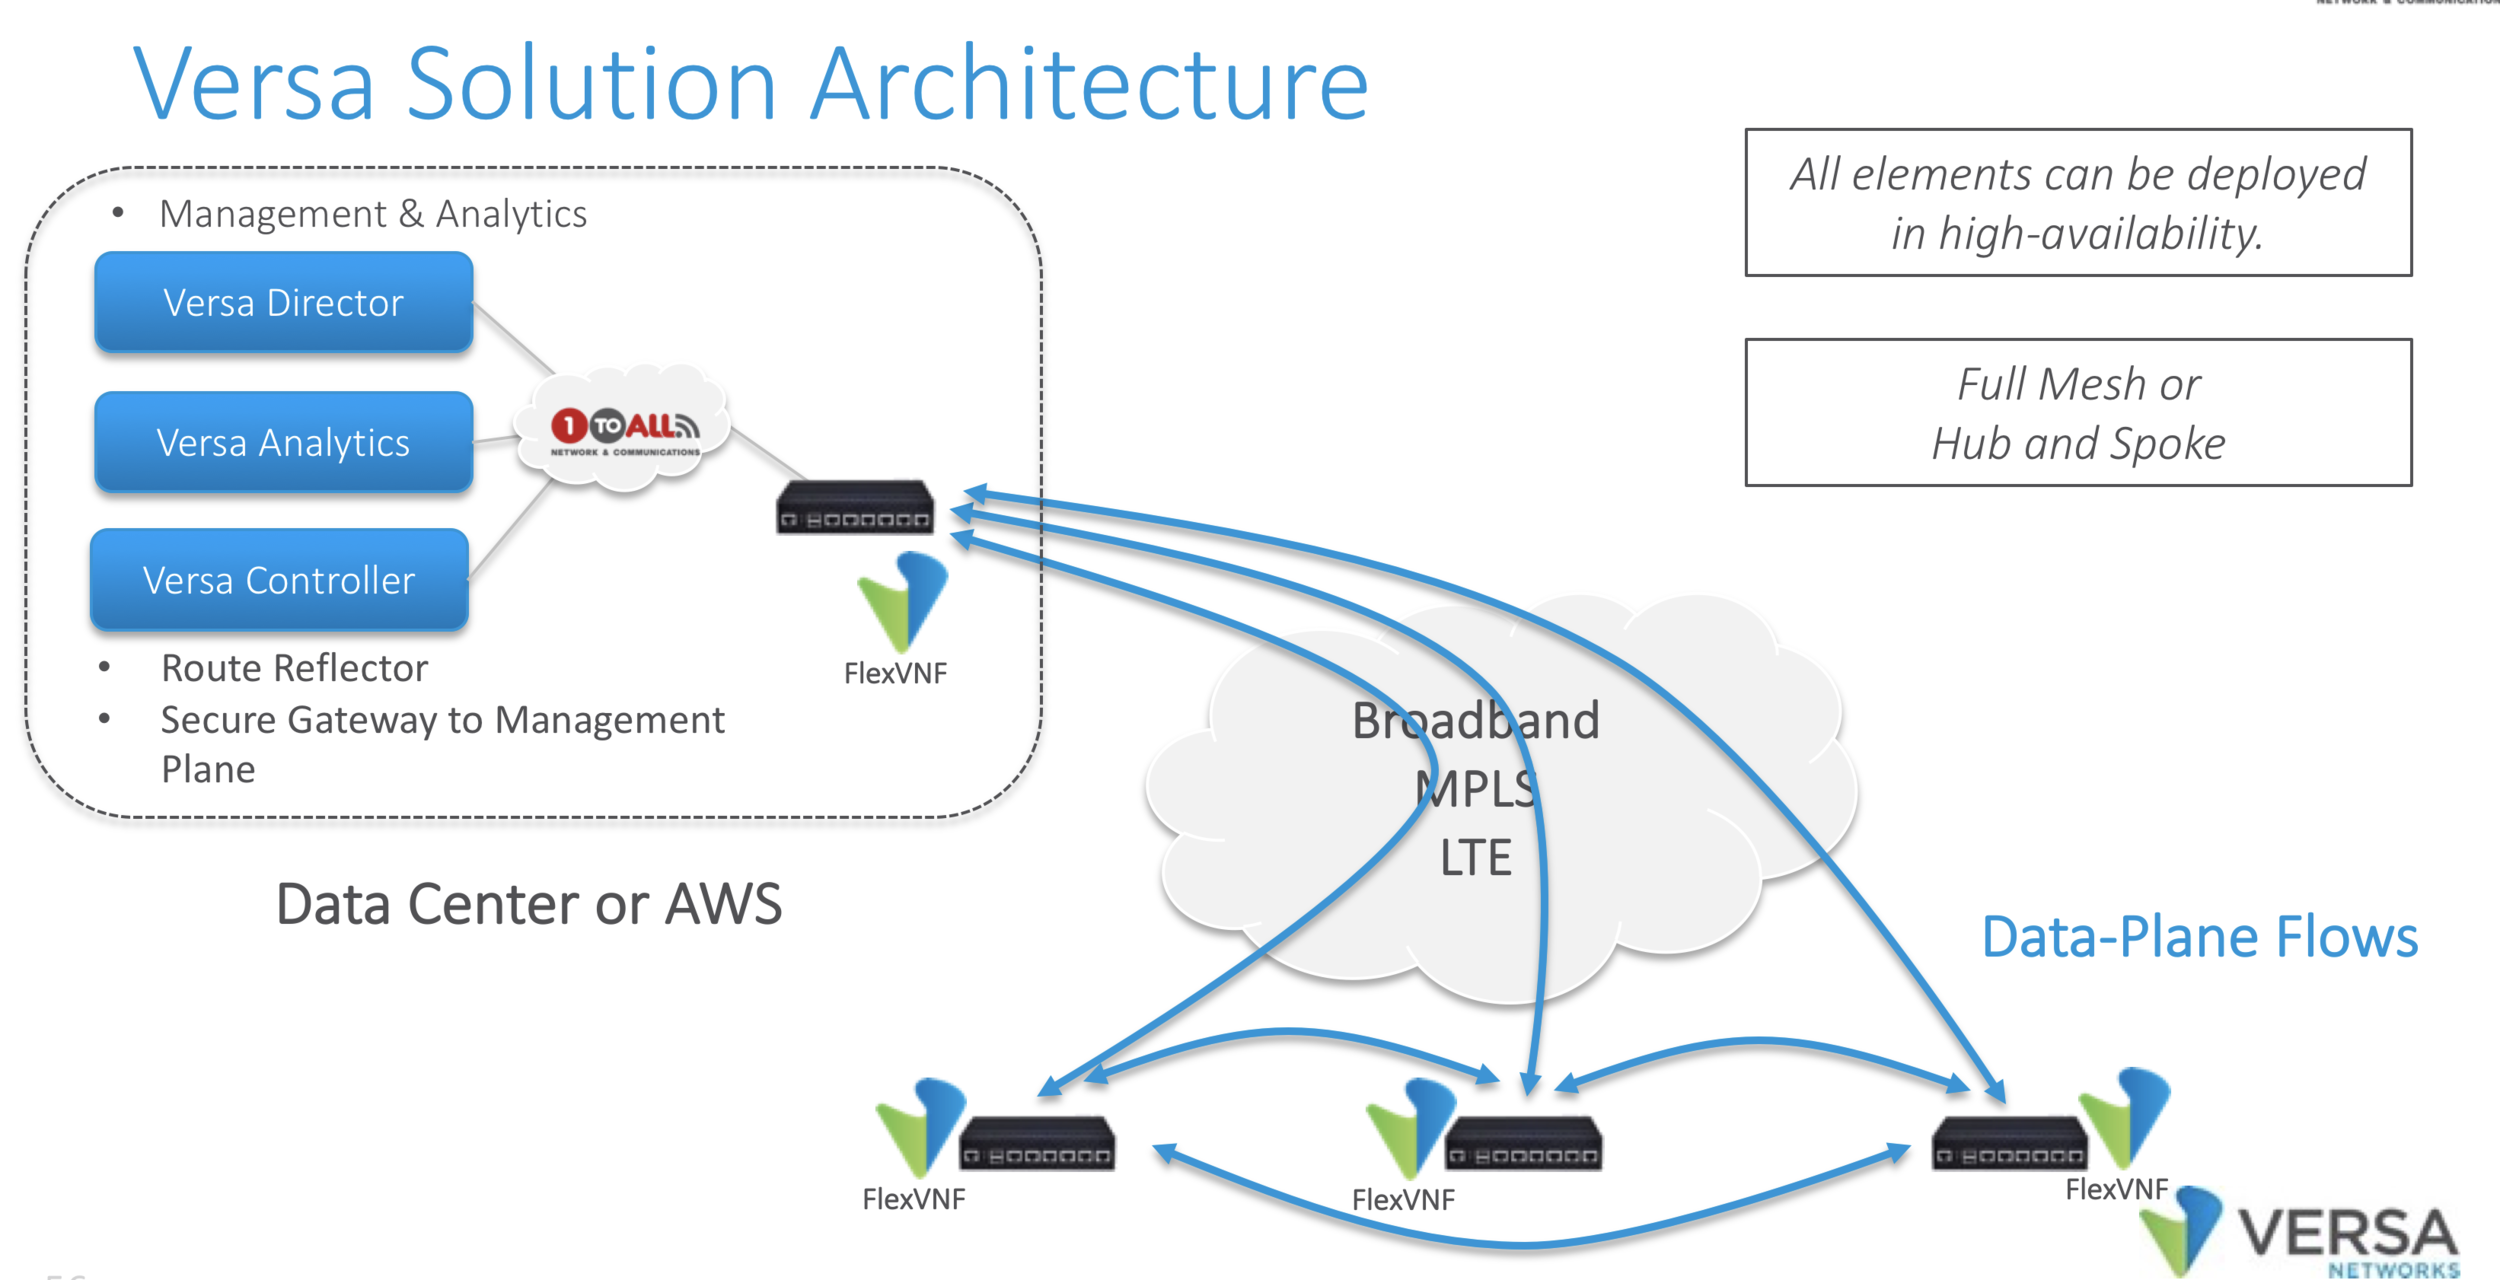 Next-Generation Architecture   Unlike 20 year-old technology like MPLS, where all the CPU processing and highly intensive tasks (routing, analytic etc) are performed at the edge device, our SD-WAN decouple them and move those resource-intensive tasks to the cloud. This is the power of Software Defined Wide Area Network (SD-WAN)